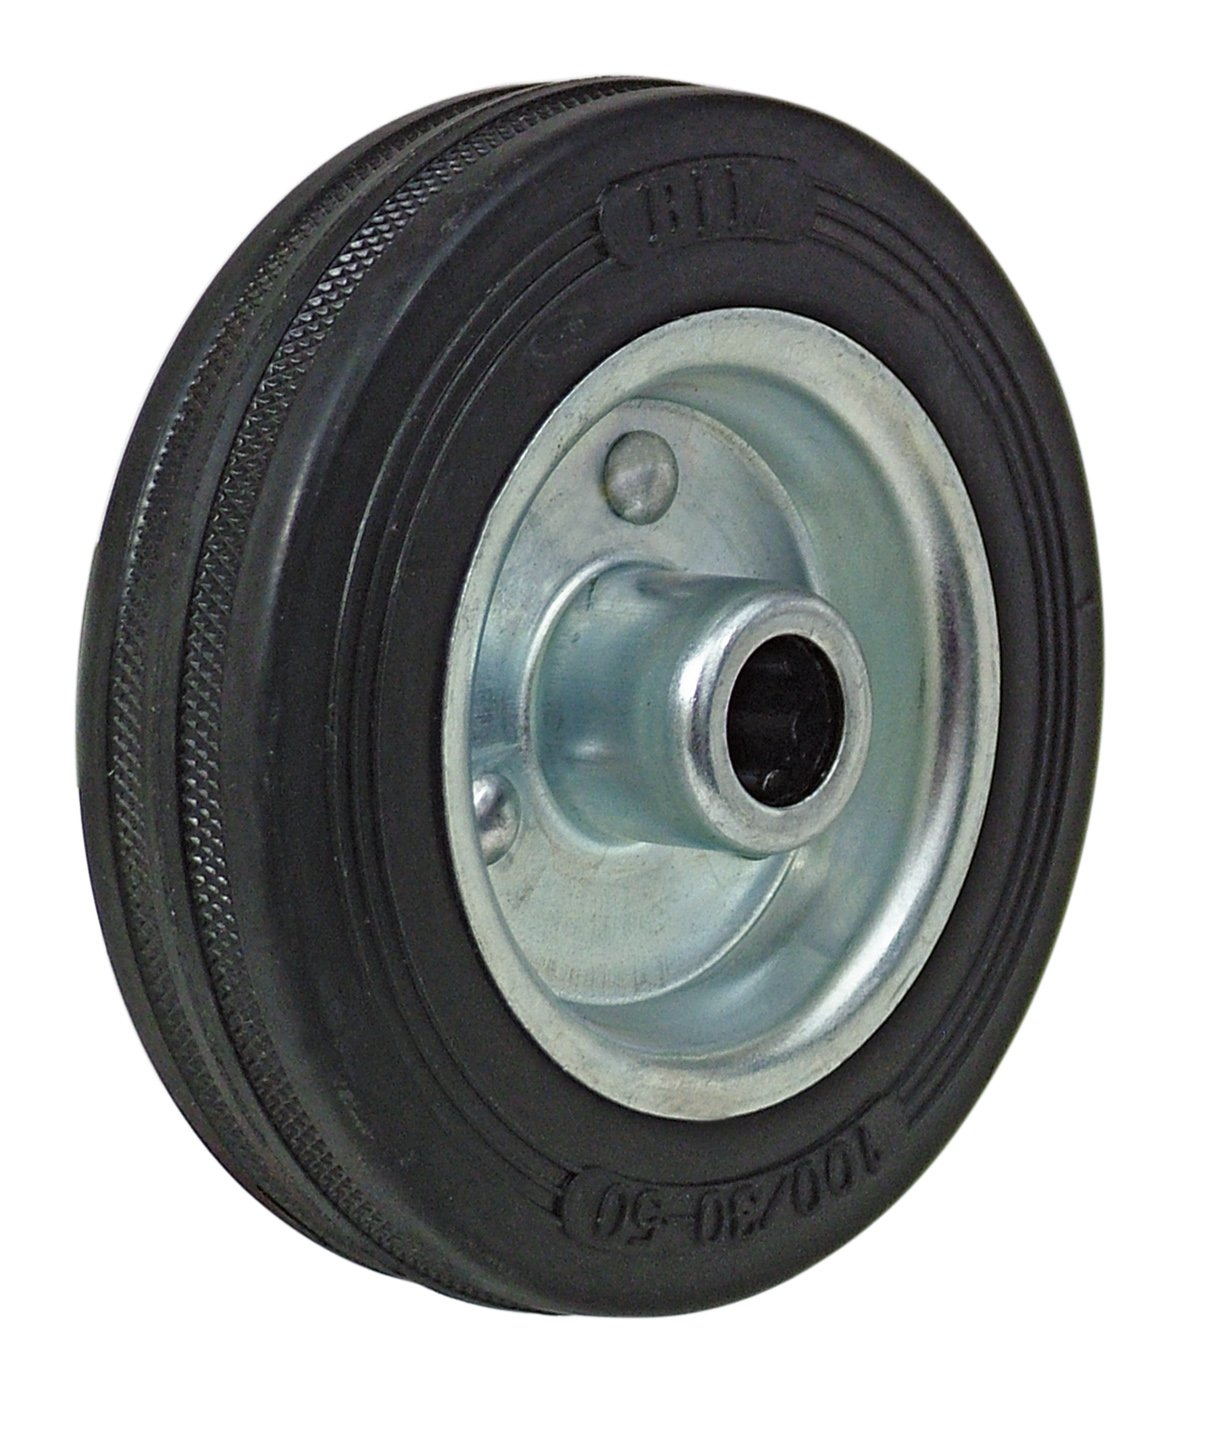 BIL BZMM125WBSRB Series WBS Wheel, Rubber On Steel, 125 mm Diameter, 37.5 mm Tread, 45 mm Hub, 15 mm Bore, 90 kg Load, Black BIL Group Ltd